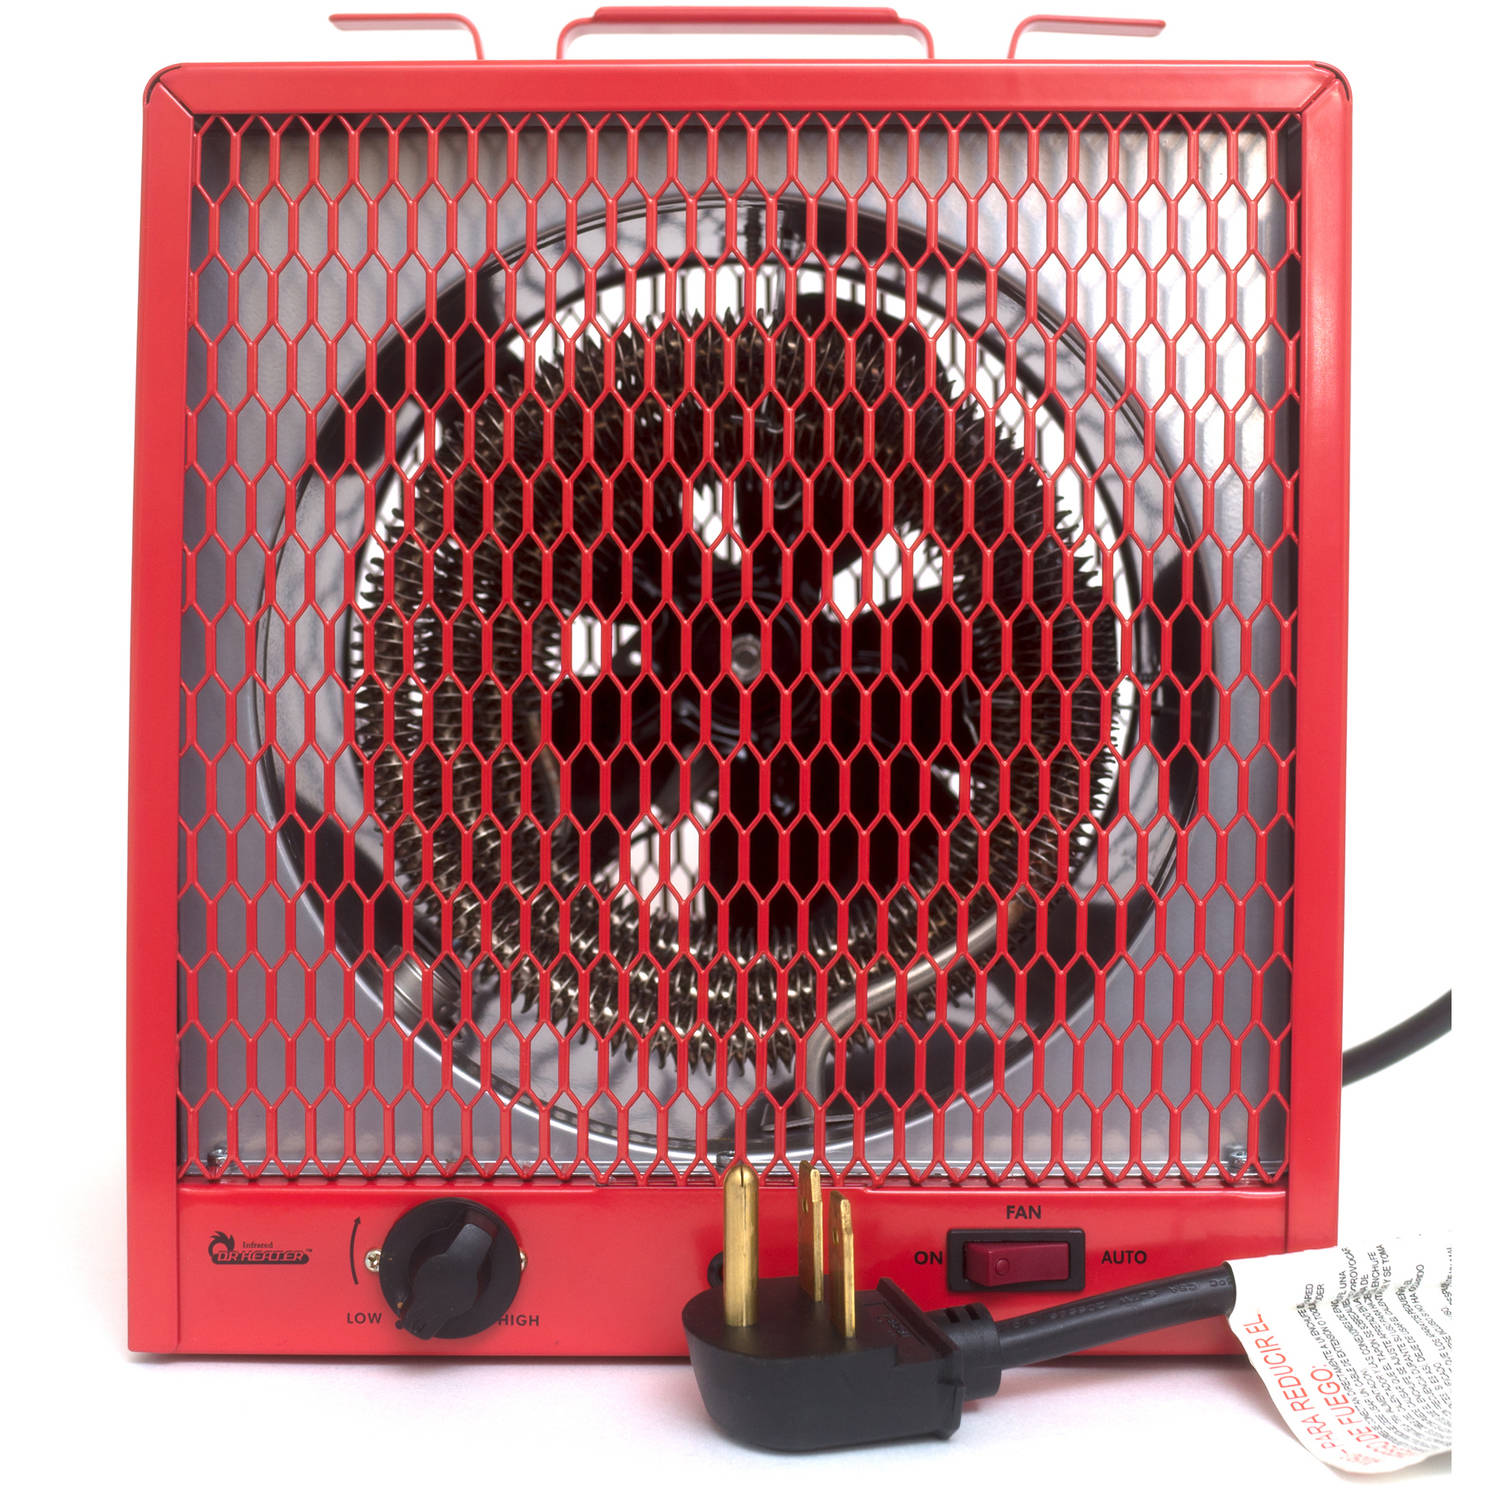 Dr. Infrared Heater DR-988 5600W Portable Industrial Heater